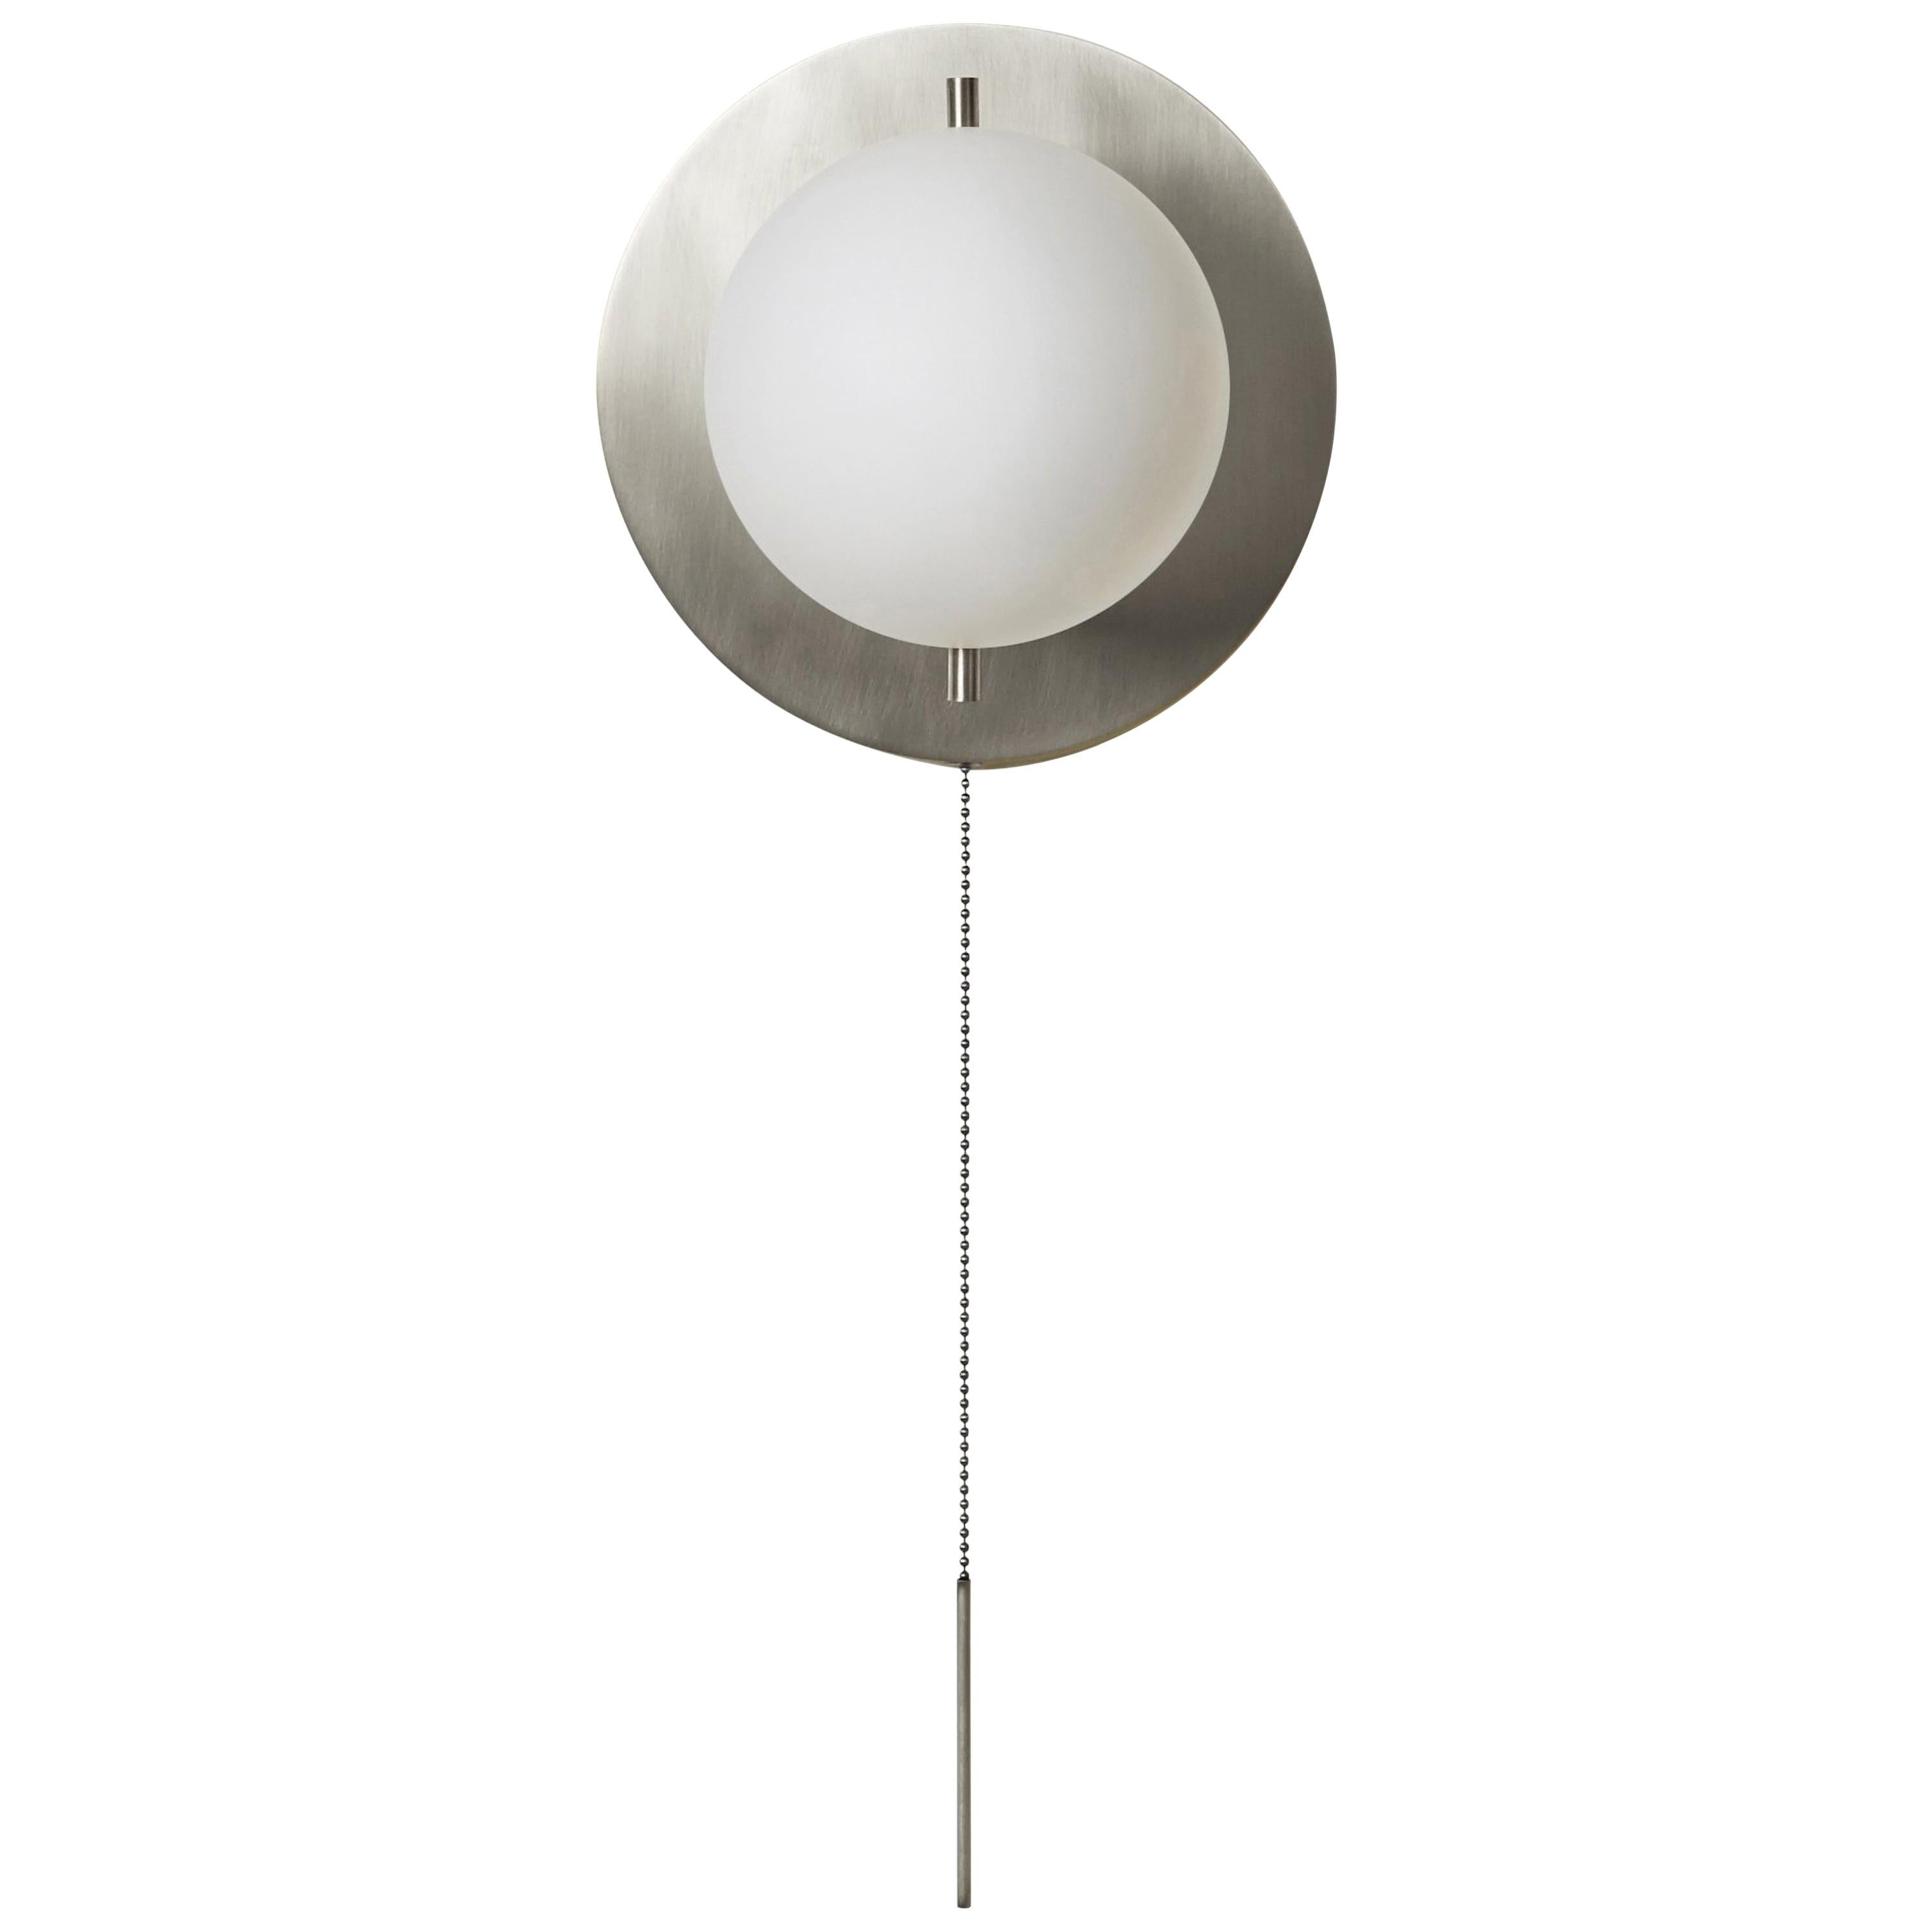 Workstead Signal Sconce in Nickel with Glass Globe and Pull Chain